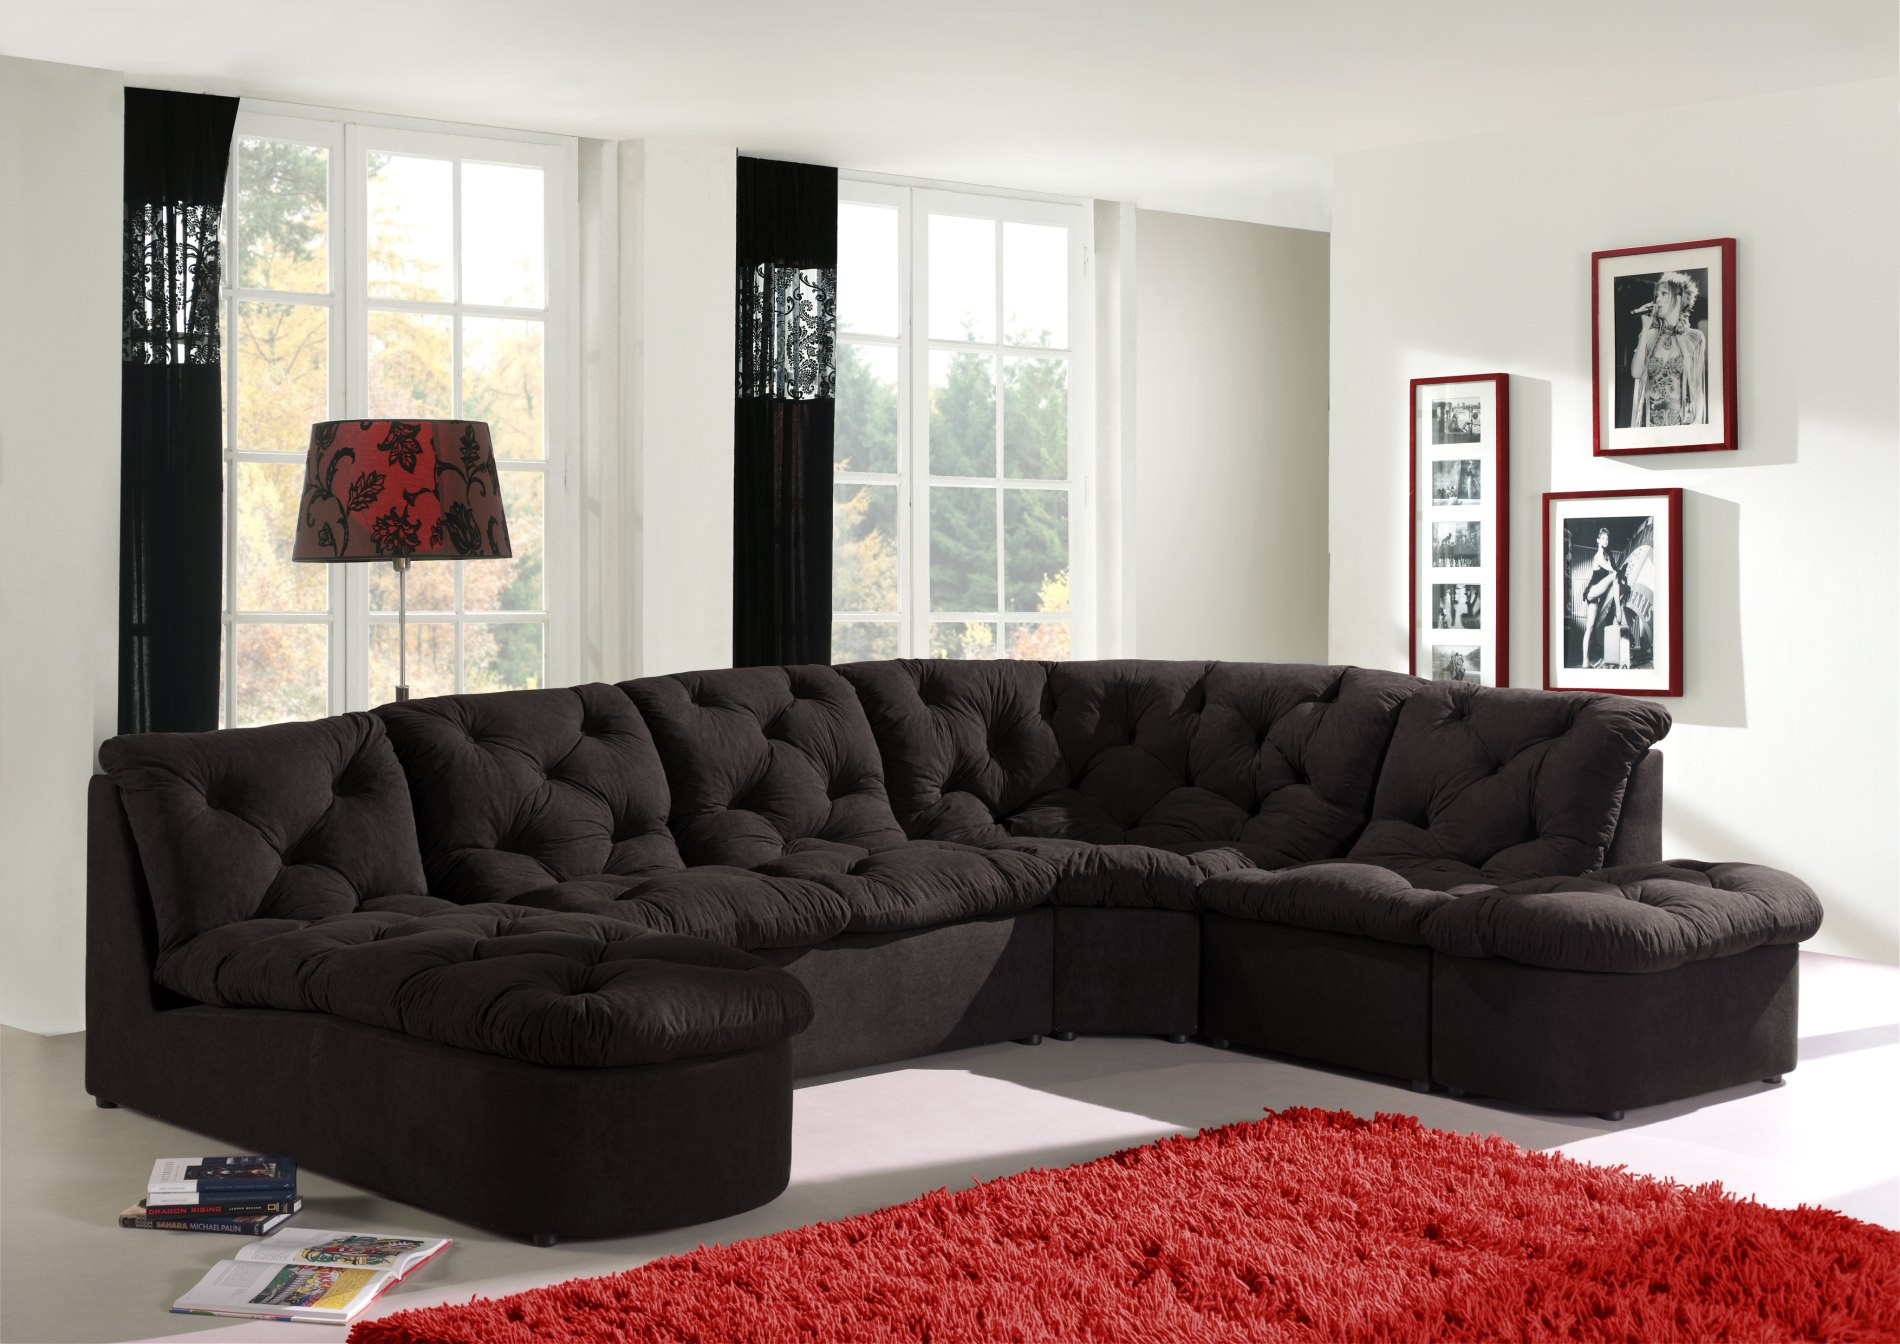 Canap d 39 angle archives royal sofa - Canape reversible pas cher ...